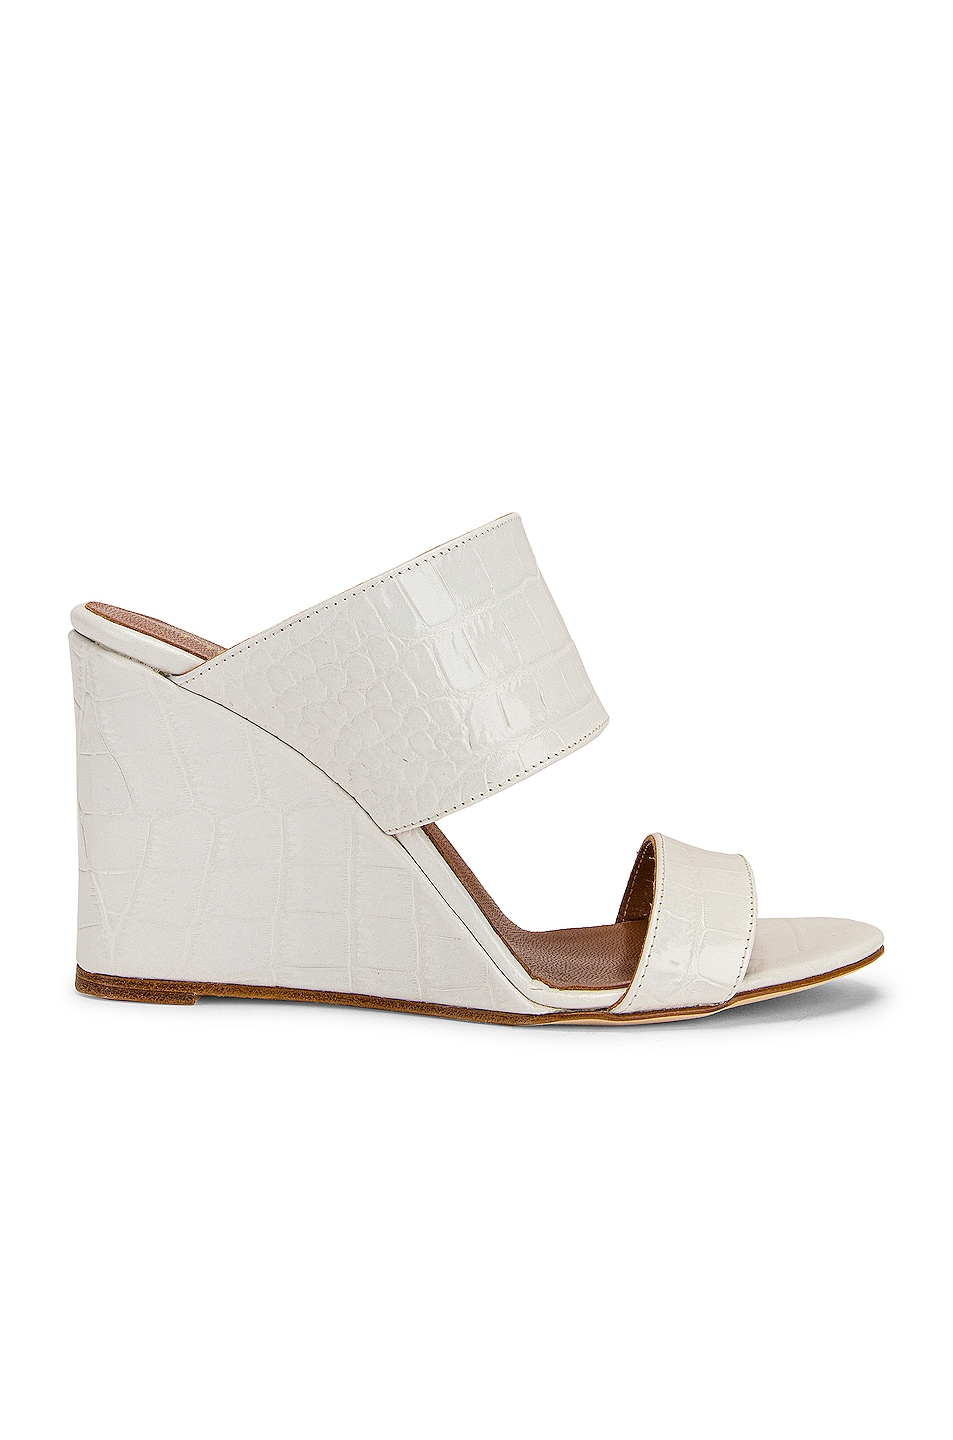 Image 1 of Paris Texas Moc Croco 80 Wedge in White